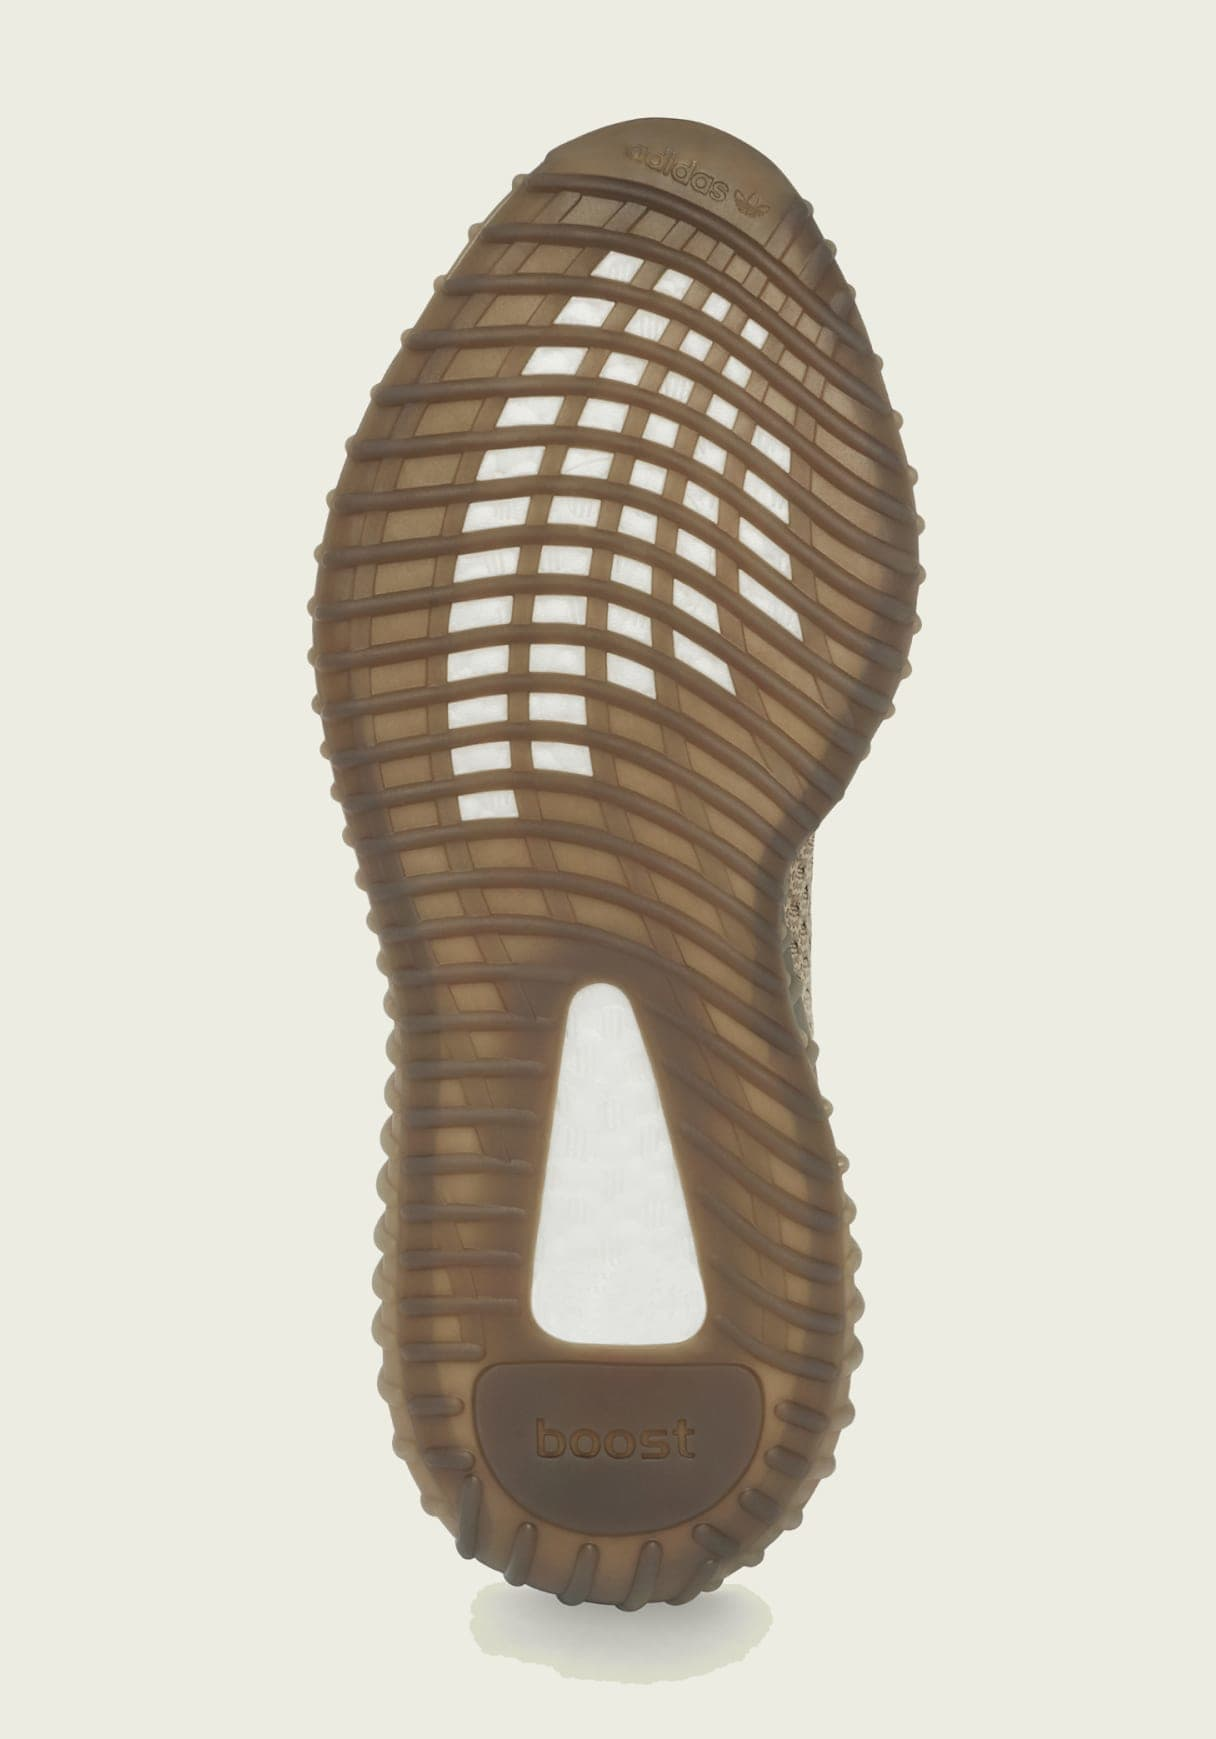 Adidas Yeezy Boost 350 V2 'Sand Taupe' FZ5240 Outsole